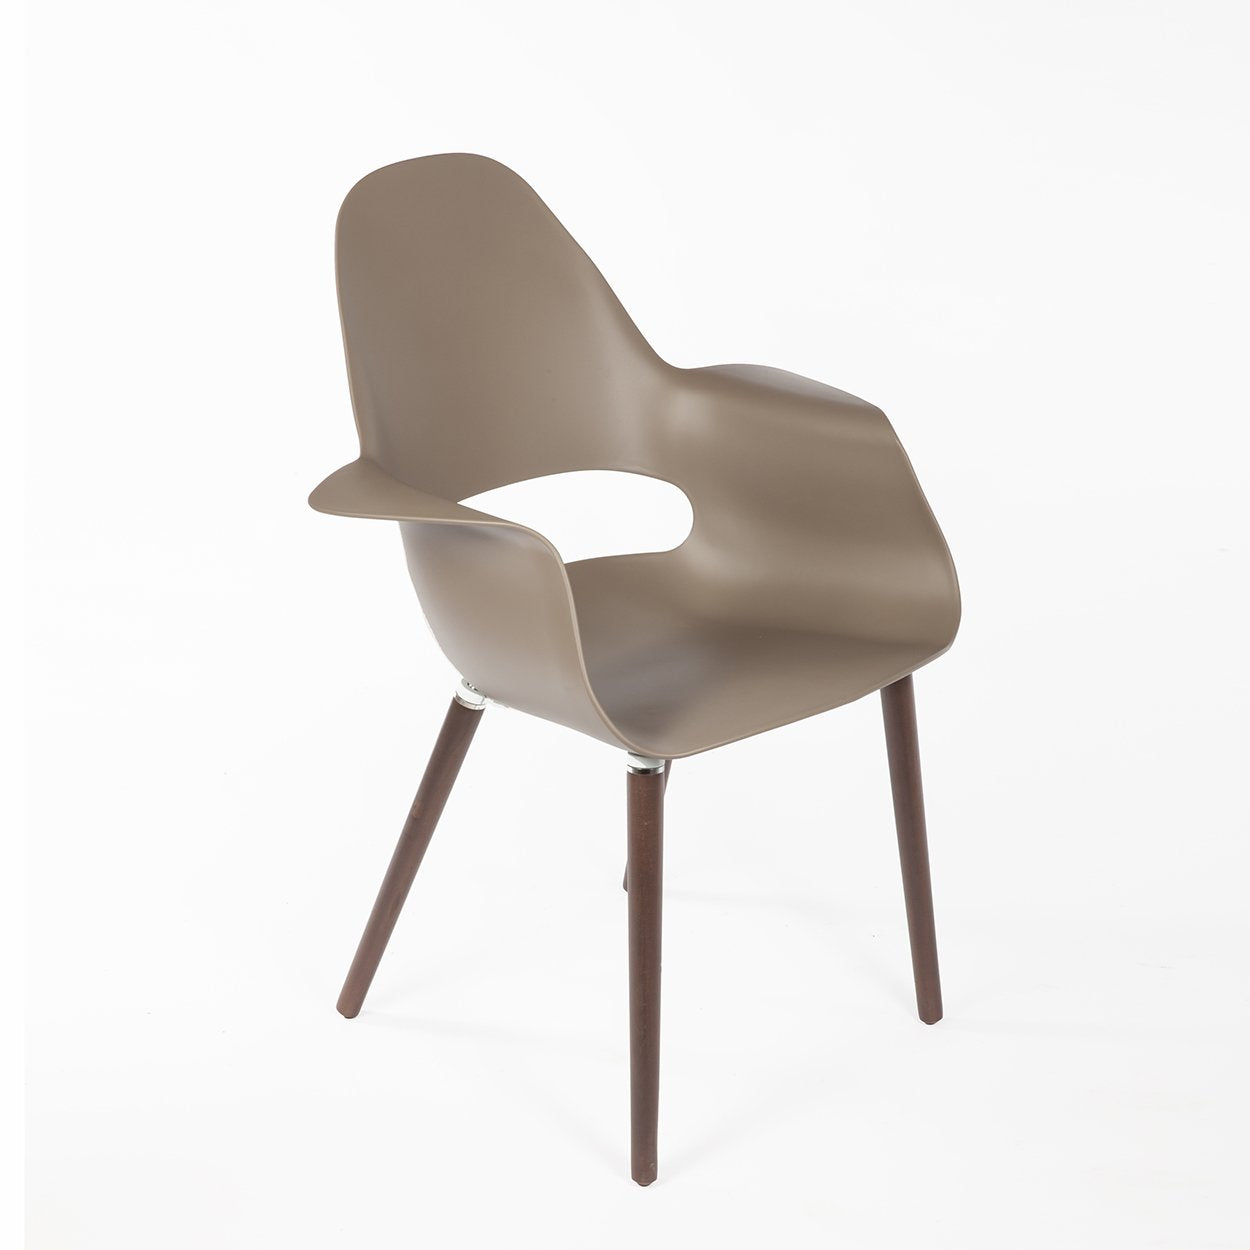 [FD195GREY] The Organic Chair SALE